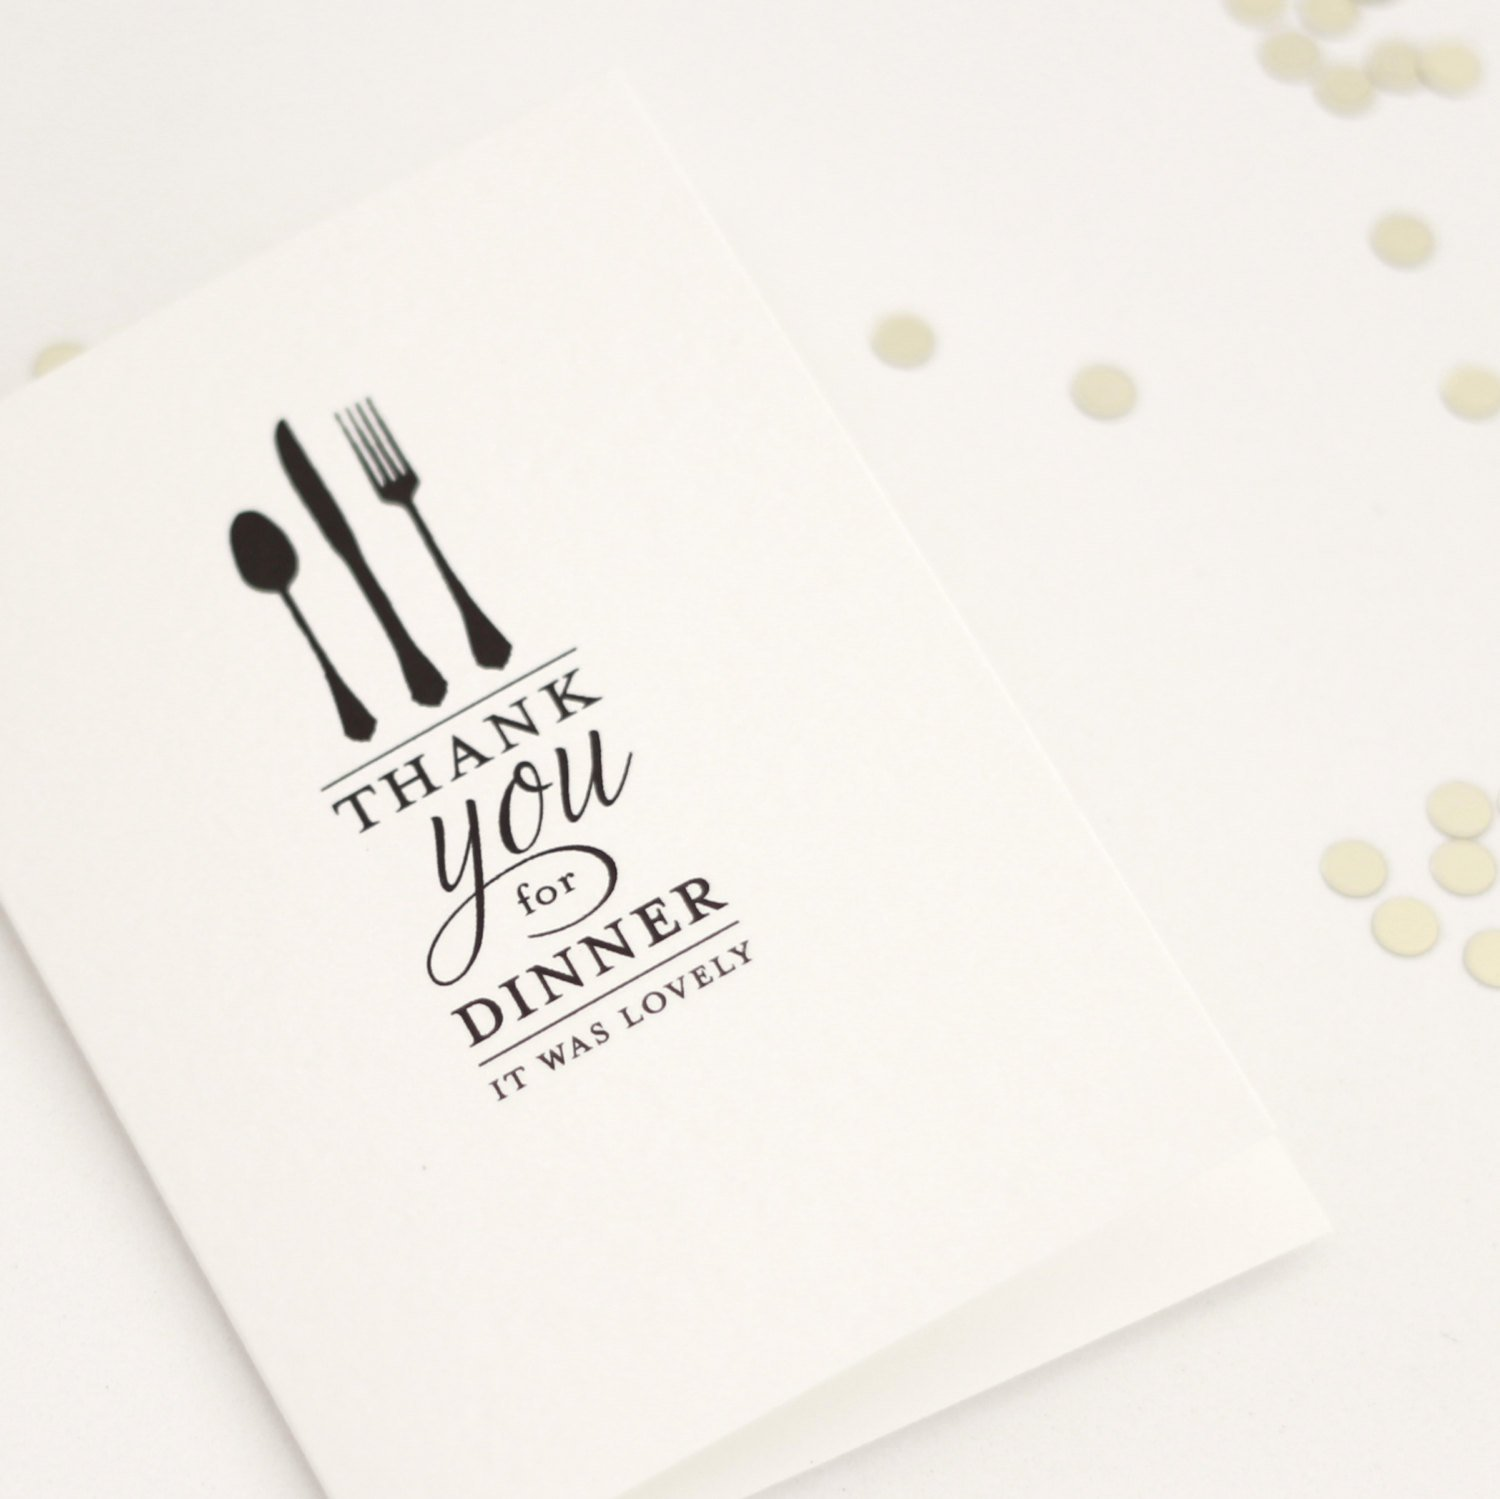 Thank You for Dinner Images Luxury Thank You for Dinner It Was Lovely Thank You Card Dinner